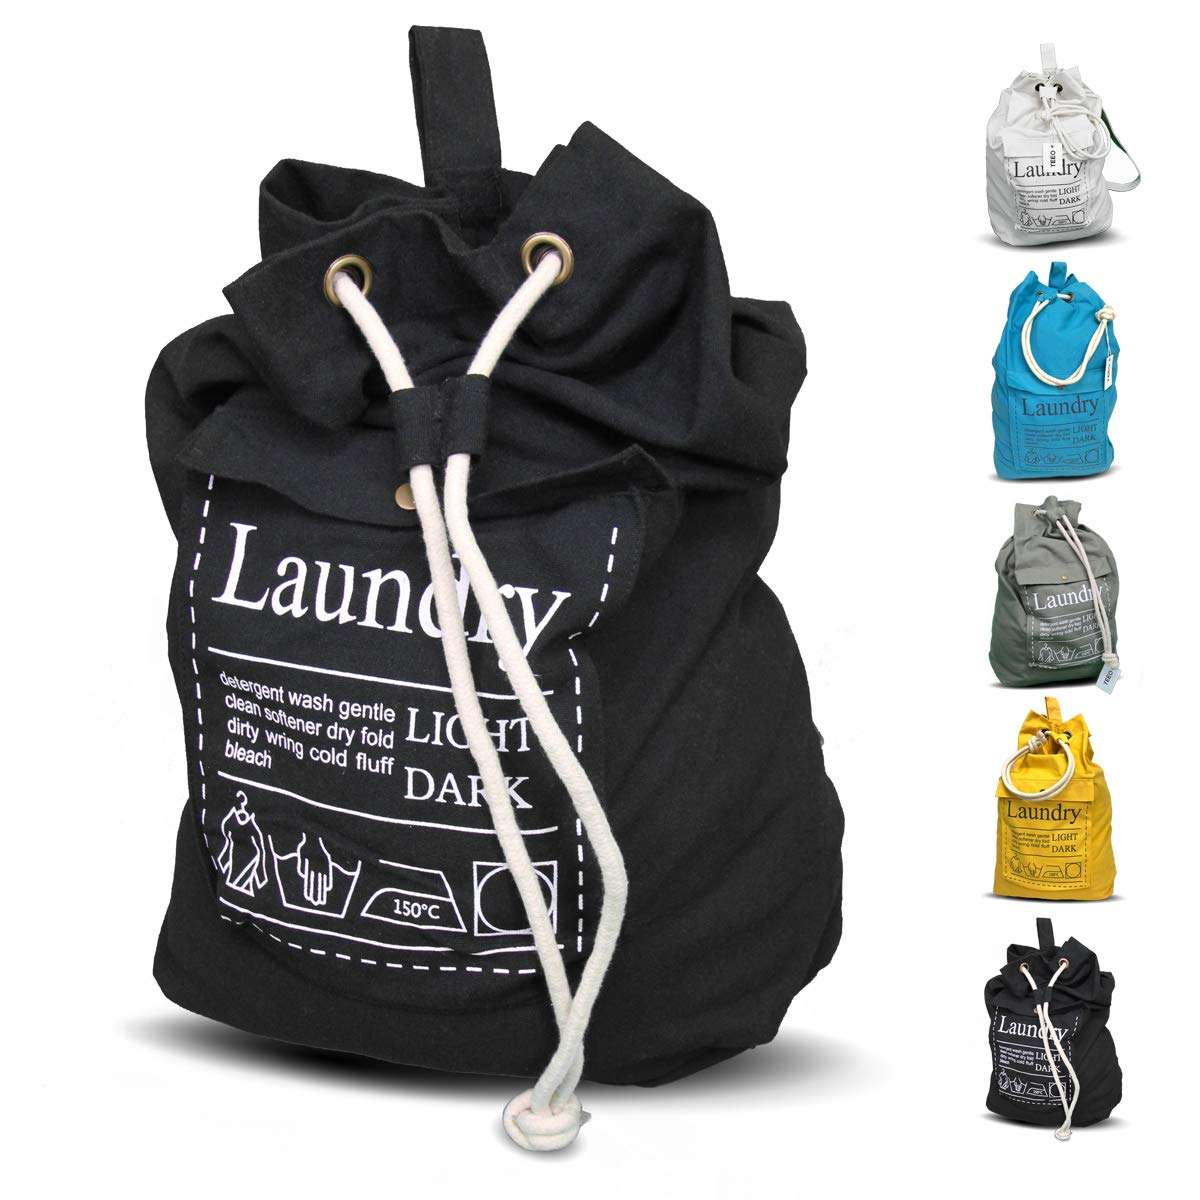 LAUNDRY BAG Backpack Large Spacious 25''X22'' Drawstring 100% Sturdy Cotton Canvas with Strap for College Students Dorm Room Clothes Hamper Storage Washer Organizer (Black)